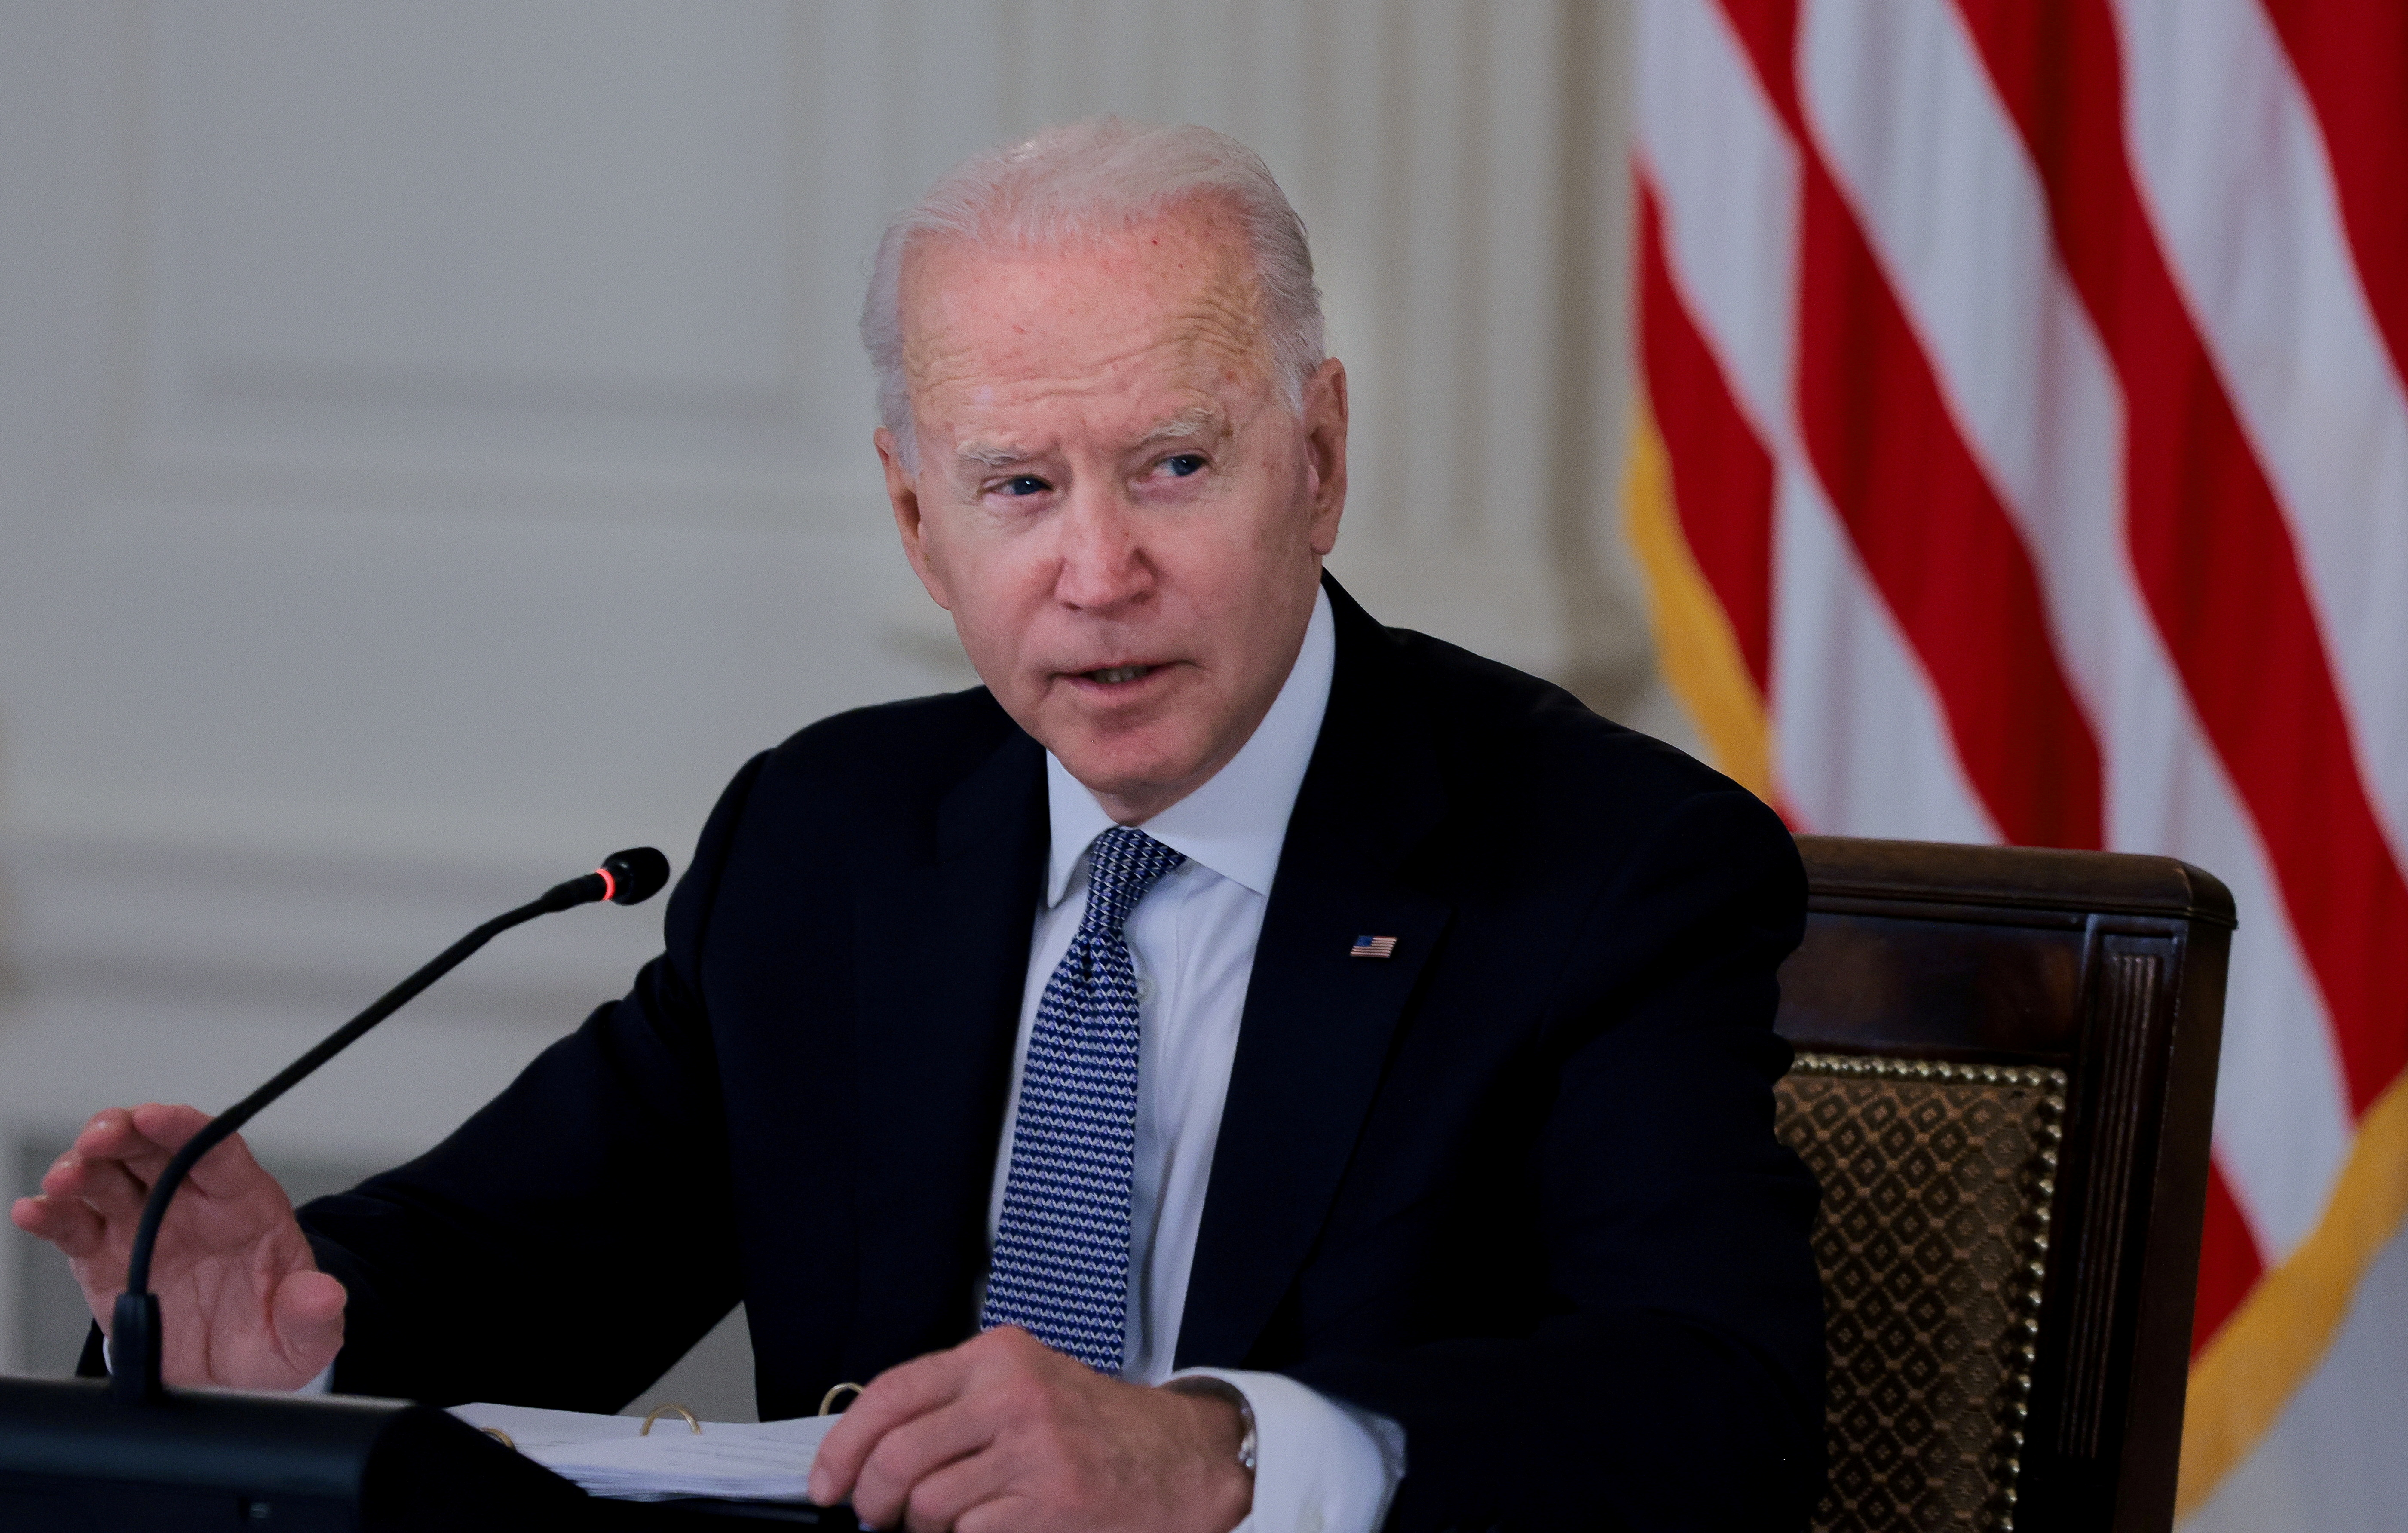 U.S. President Joe Biden in the State Dining Room at the White House in Washington, U.S., July 30, 2021. REUTERS/Evelyn Hockstein